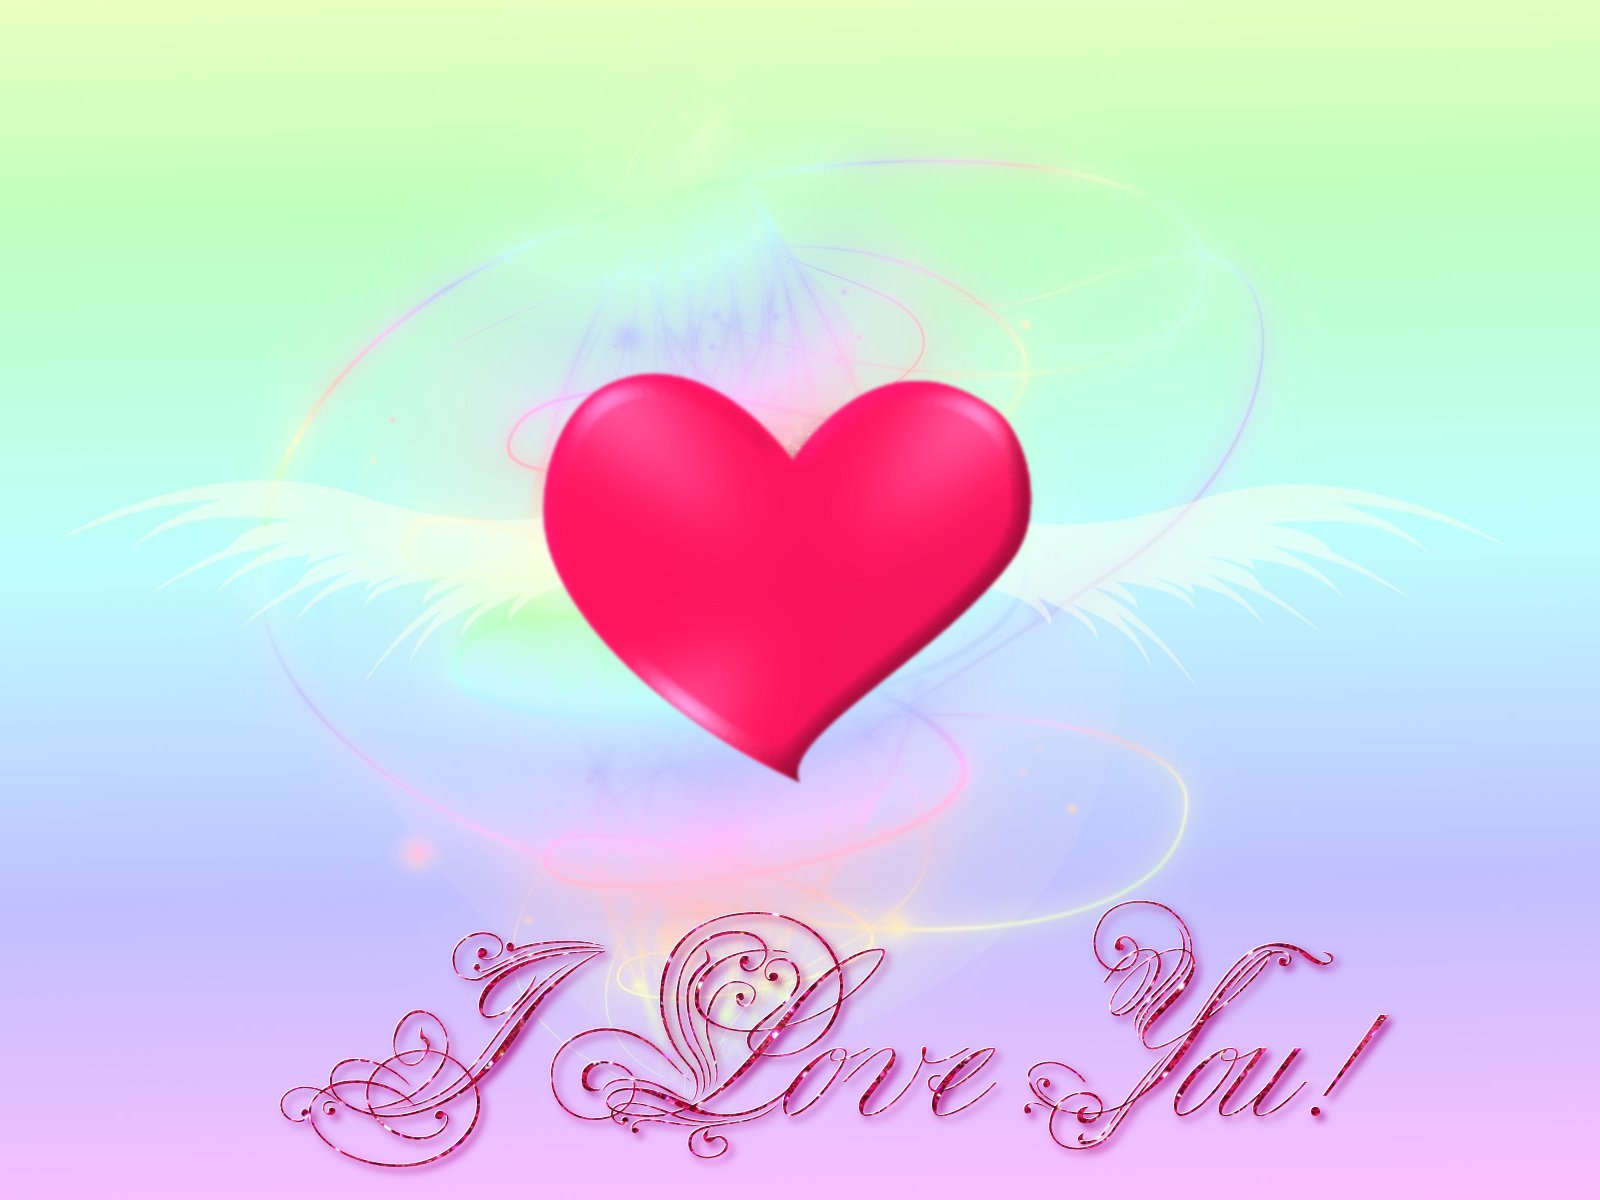 love an hearts wallpapers x kinds of news latest wallpapers heart 1600x1200